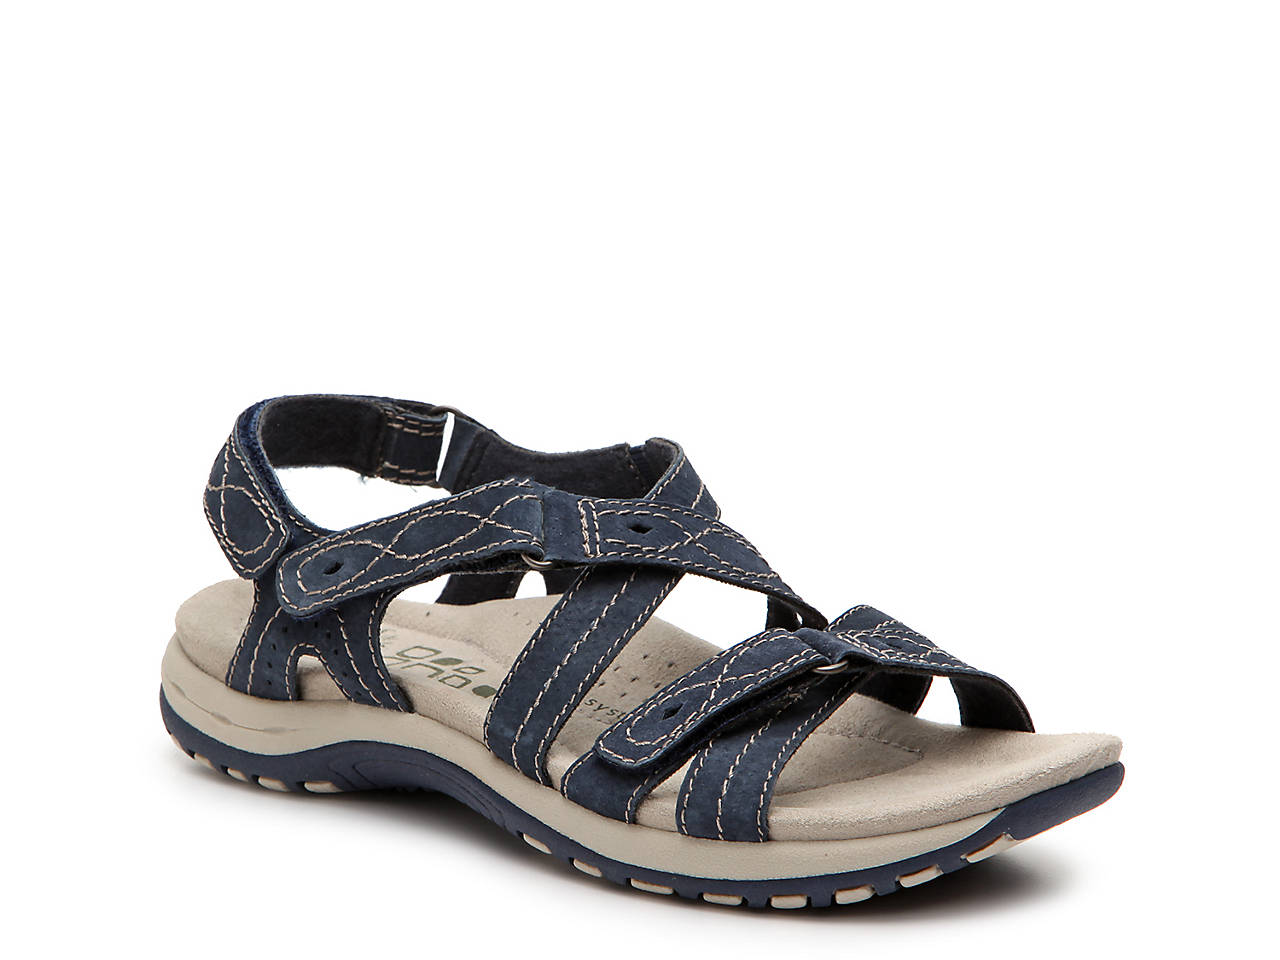 Earth Origins Harlin Gladiator Sandal (Women's) hQQN8jJI